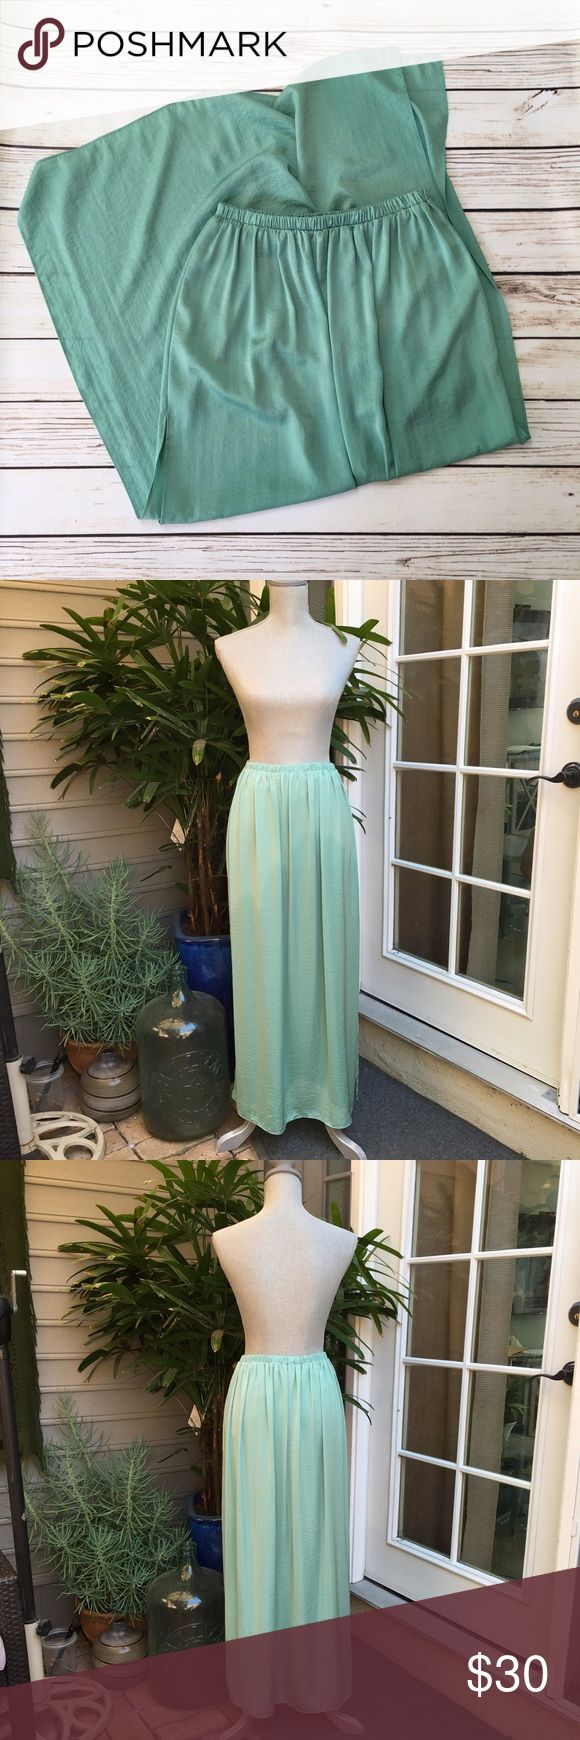 ZARA Mint Maxi Skirt ZARA Mint Maxi Skirt. Worn once. As is. In excellent condition. Elastic waistband. Thigh high slits on both sides. Zara Skirts Maxi